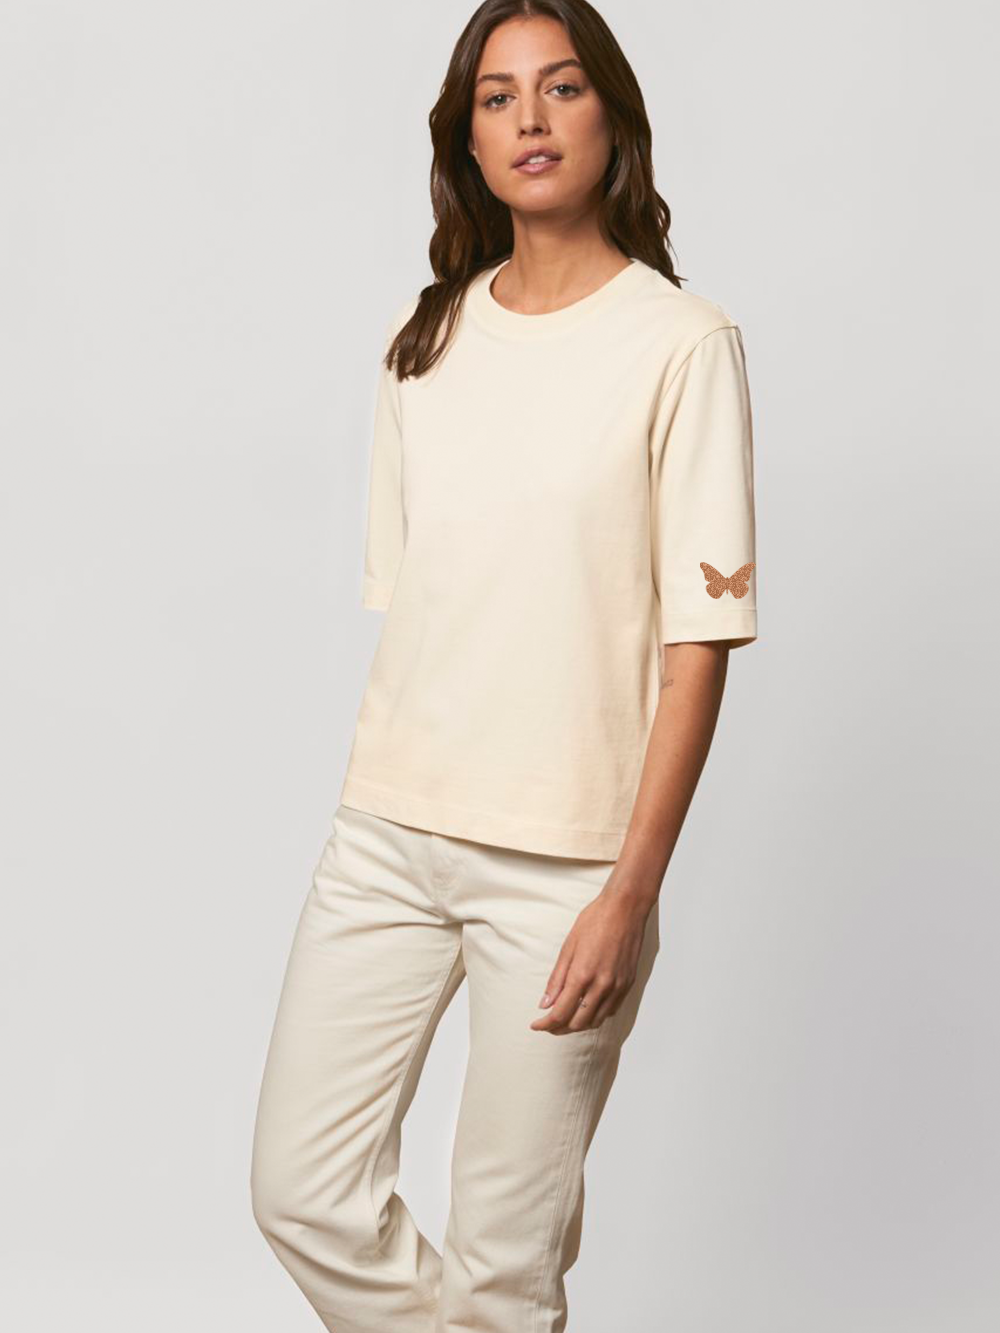 3/4 Length Sleeve Tshirt – Natural With Copper Butterflies